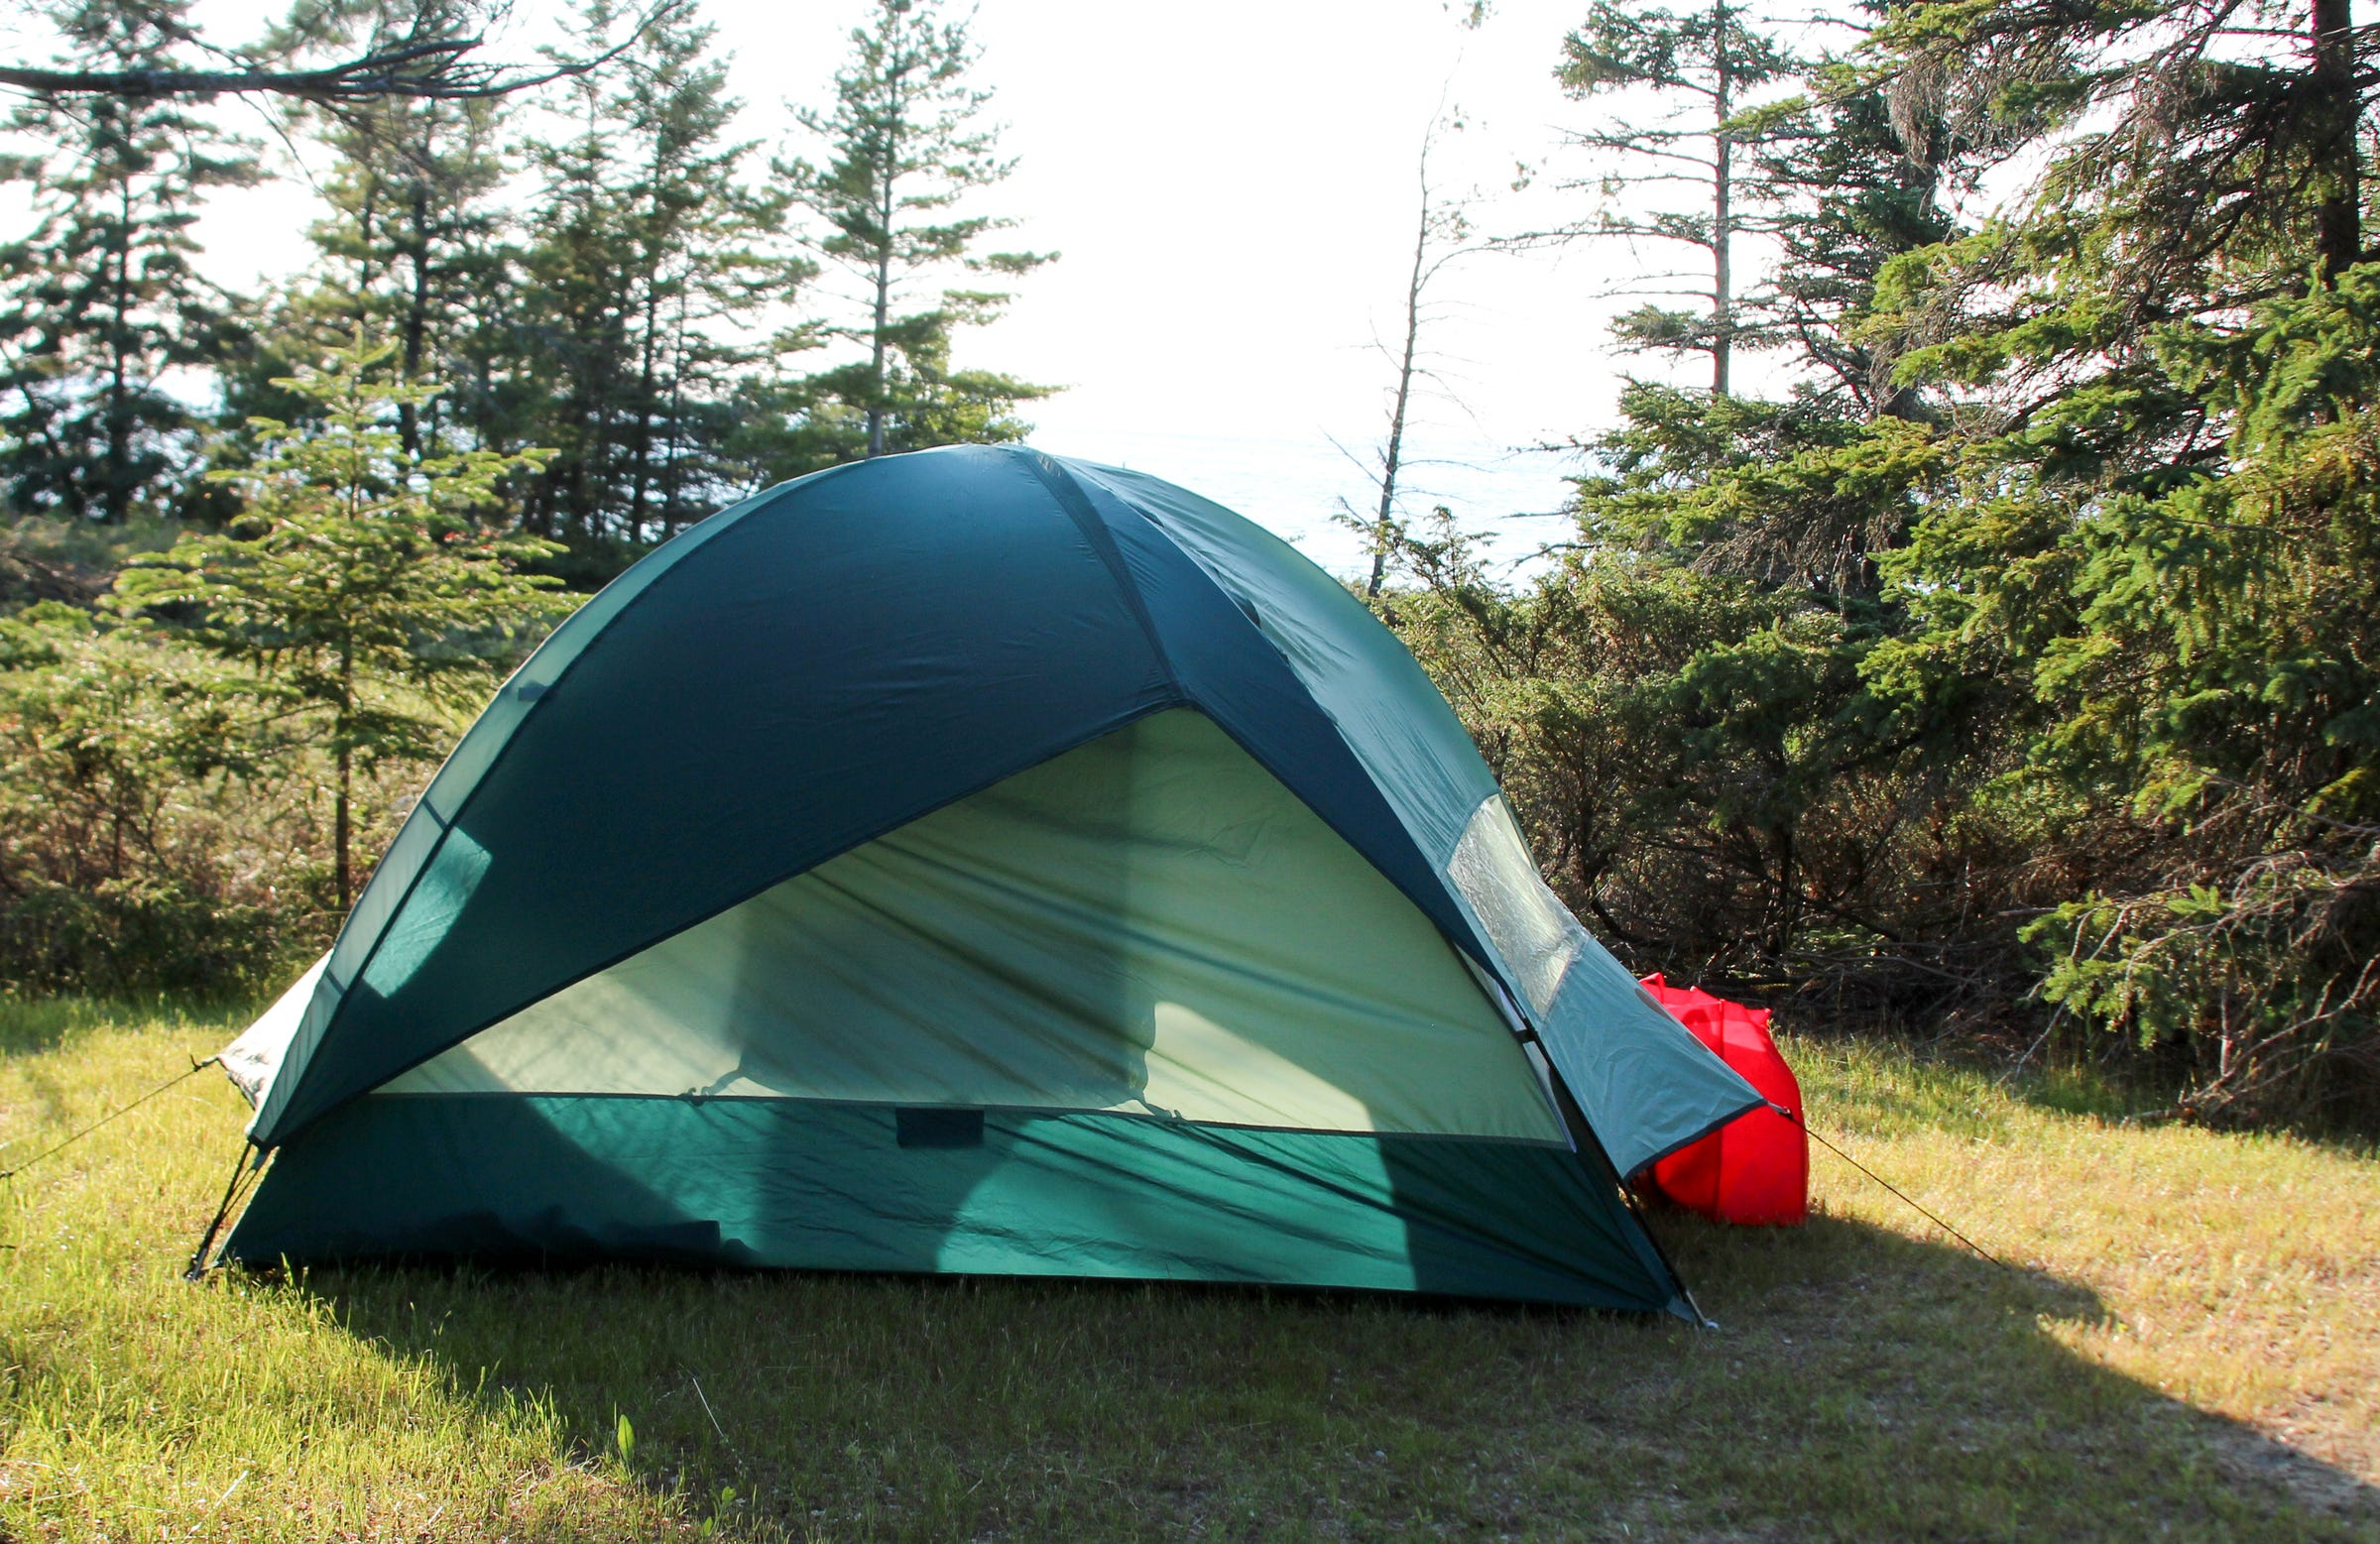 & New Michigan state park campsites cater to tent lovers